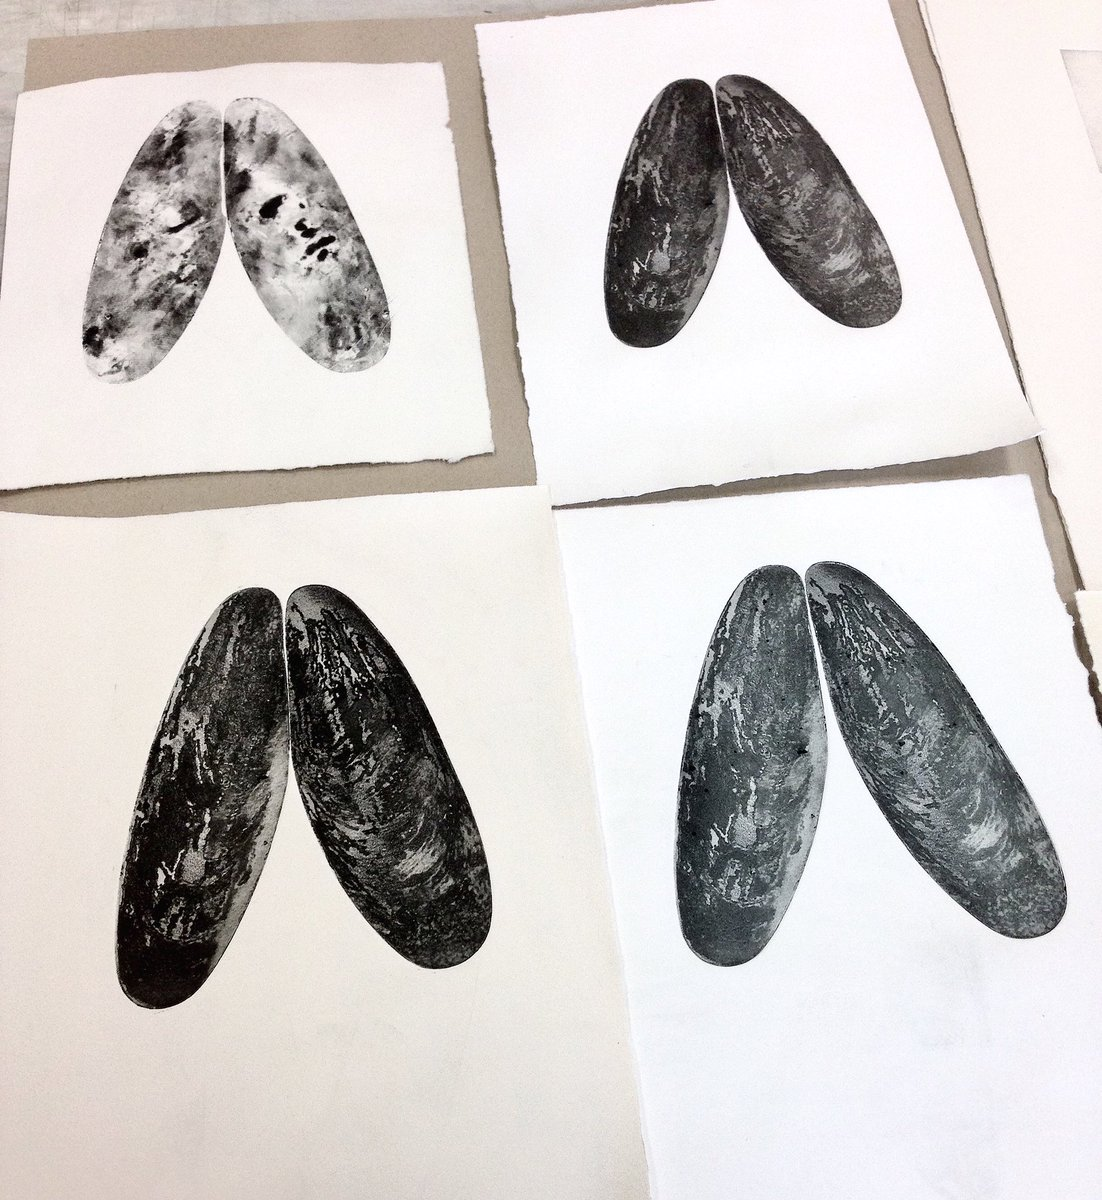 Some prooves of the mussel~ #etching #printmaking #grabado #mussel #mejillon<br>http://pic.twitter.com/pPWOwS9MJG